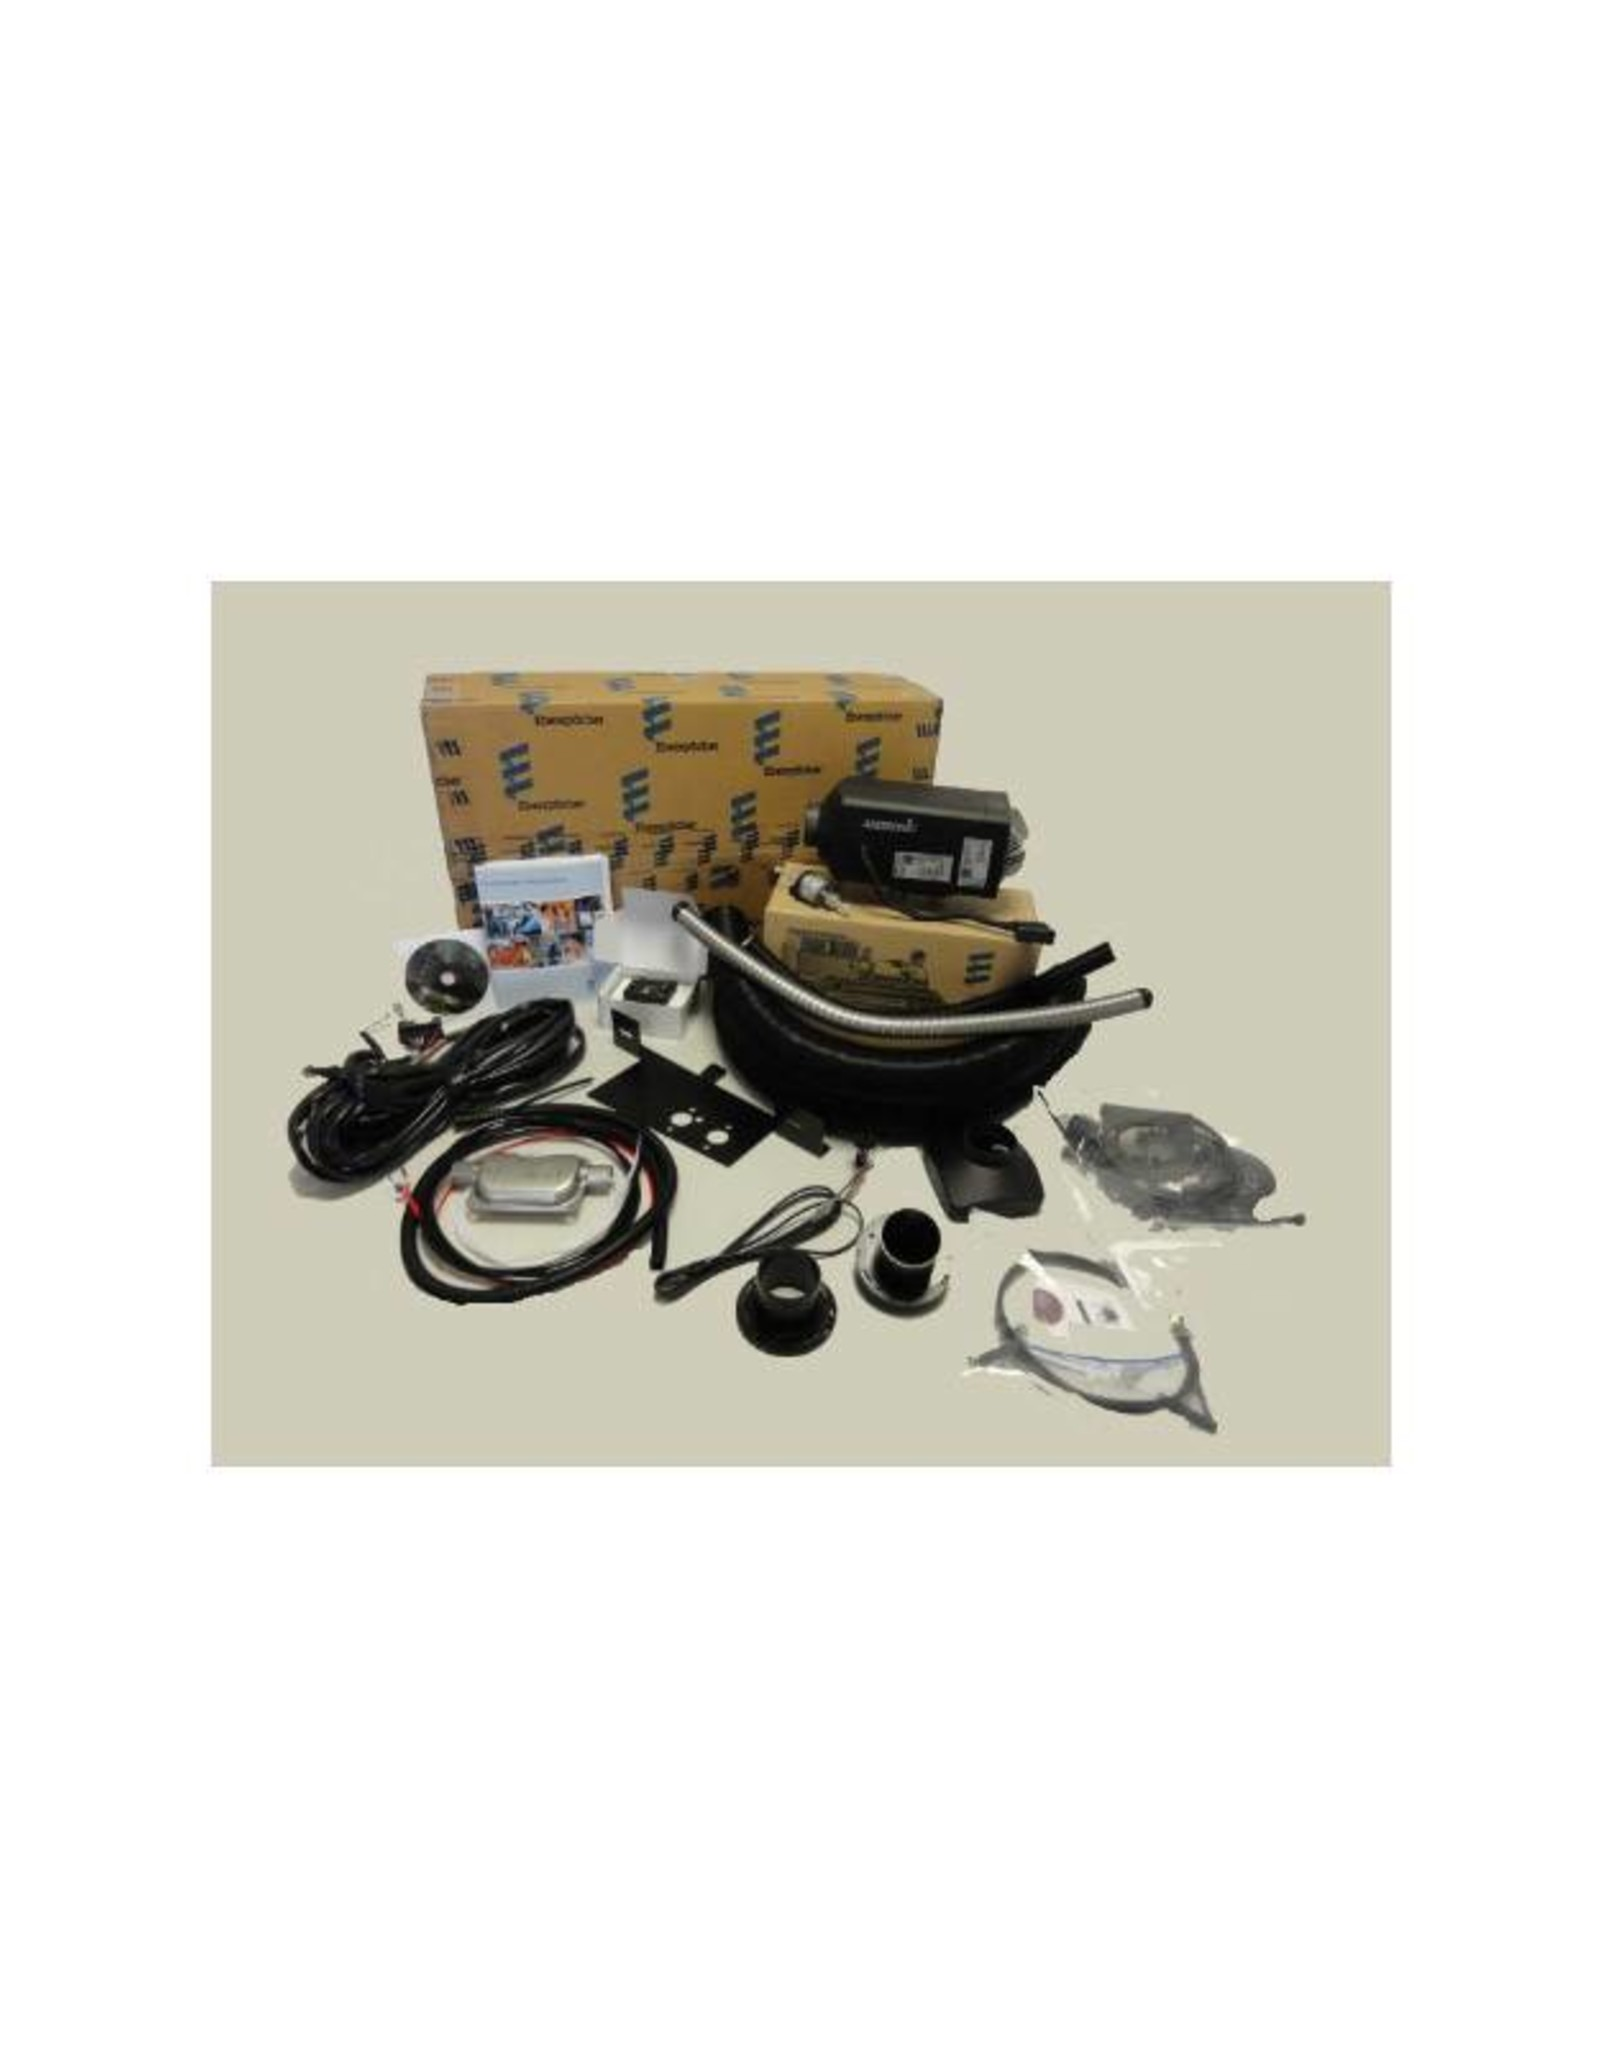 D2 Airtronic 12v Heater and Kit 25 2069 05